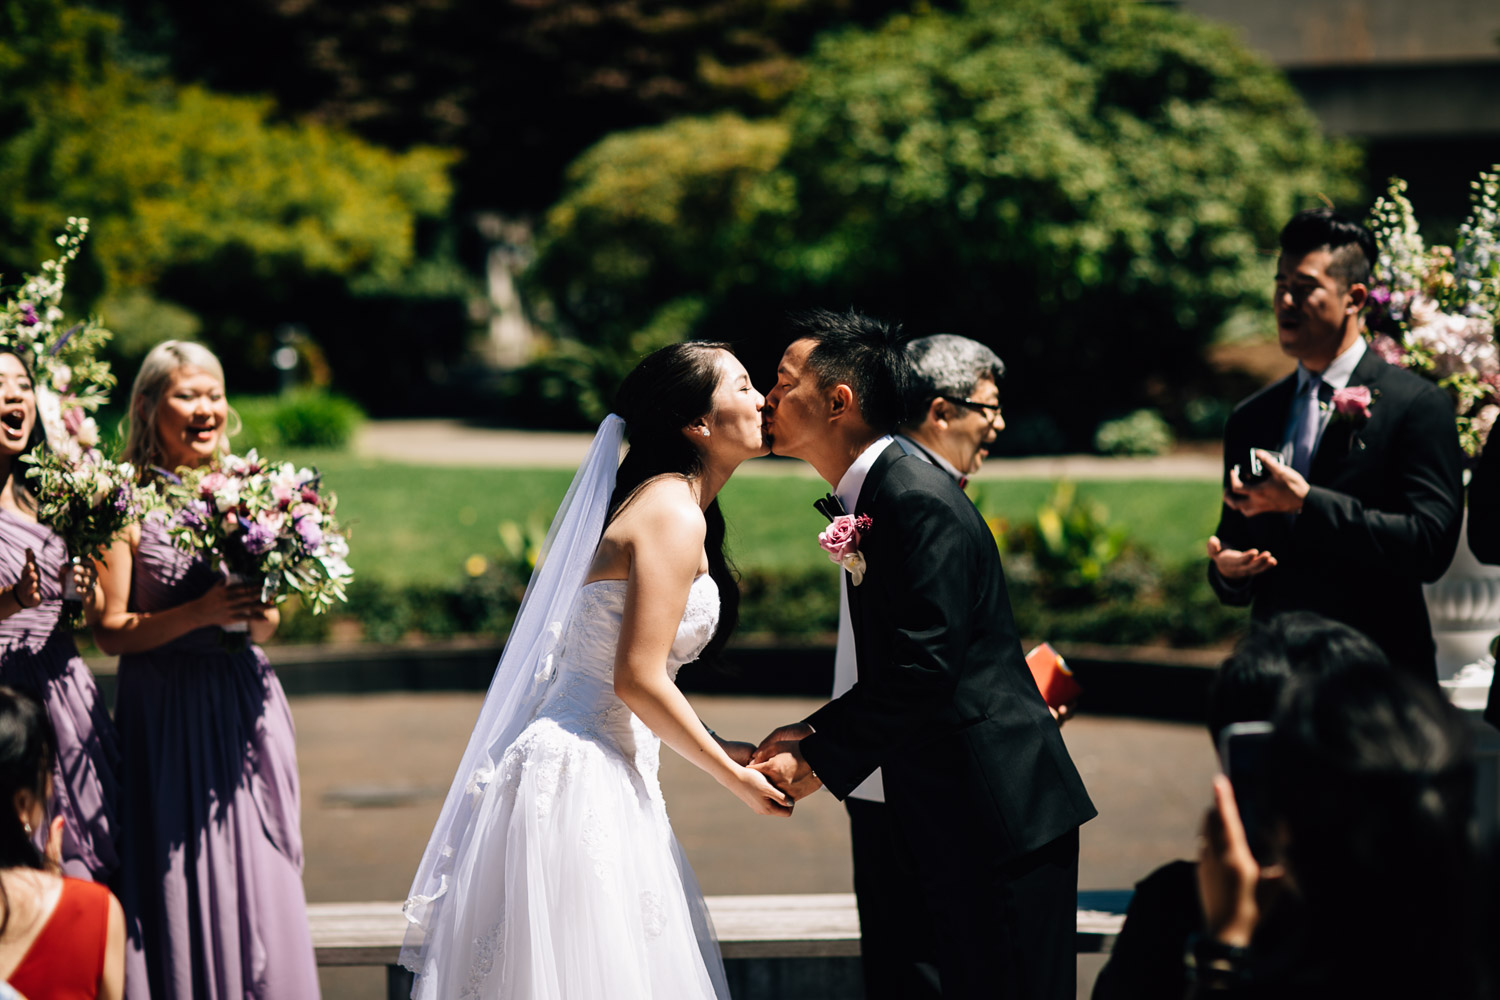 wedding kiss at alter ubc sage bistro ceremony